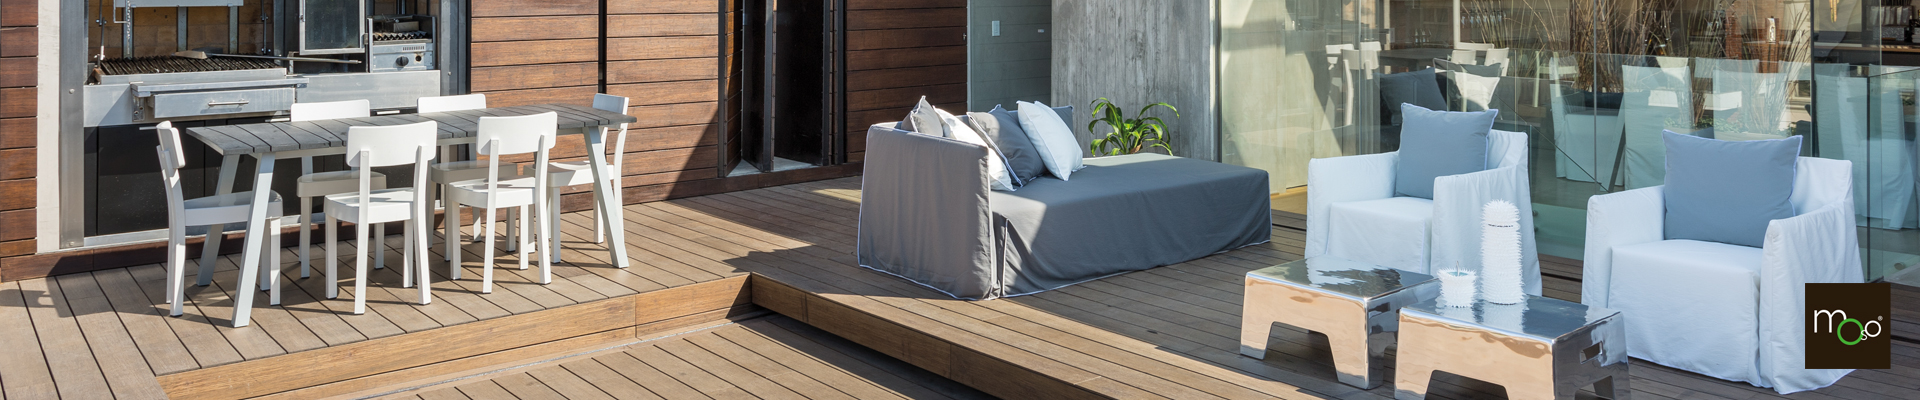 HOTwood bamboo decking boards | Carpentier Hardwood Solutions